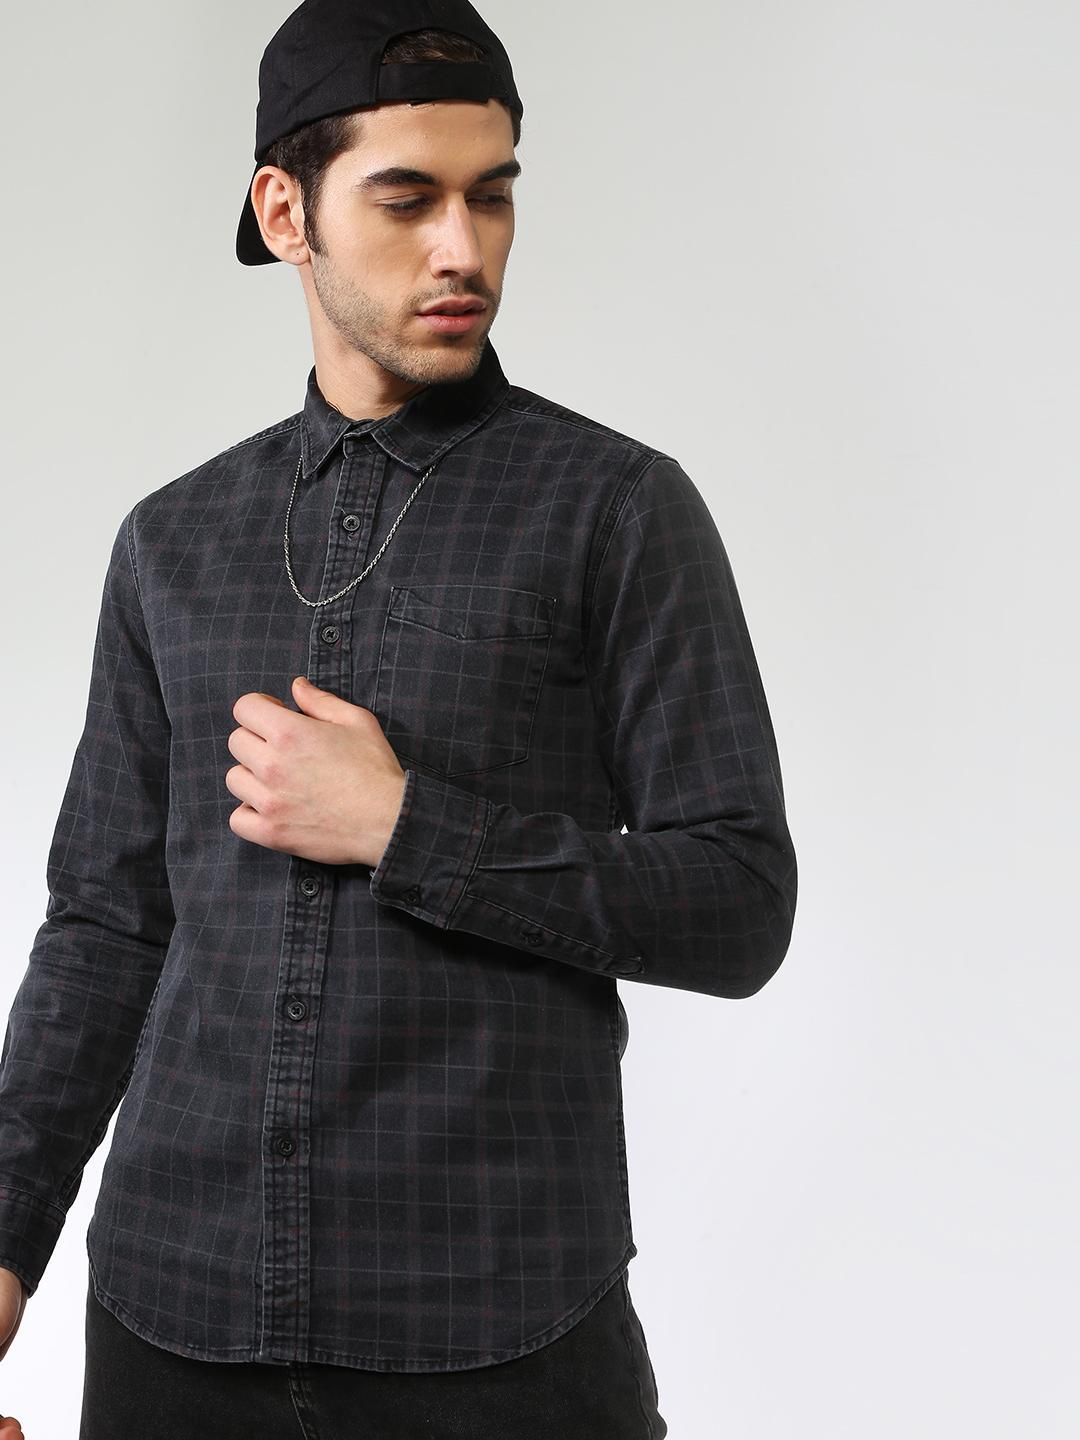 Blue Saint Black All Over Check Printed Shirt 1